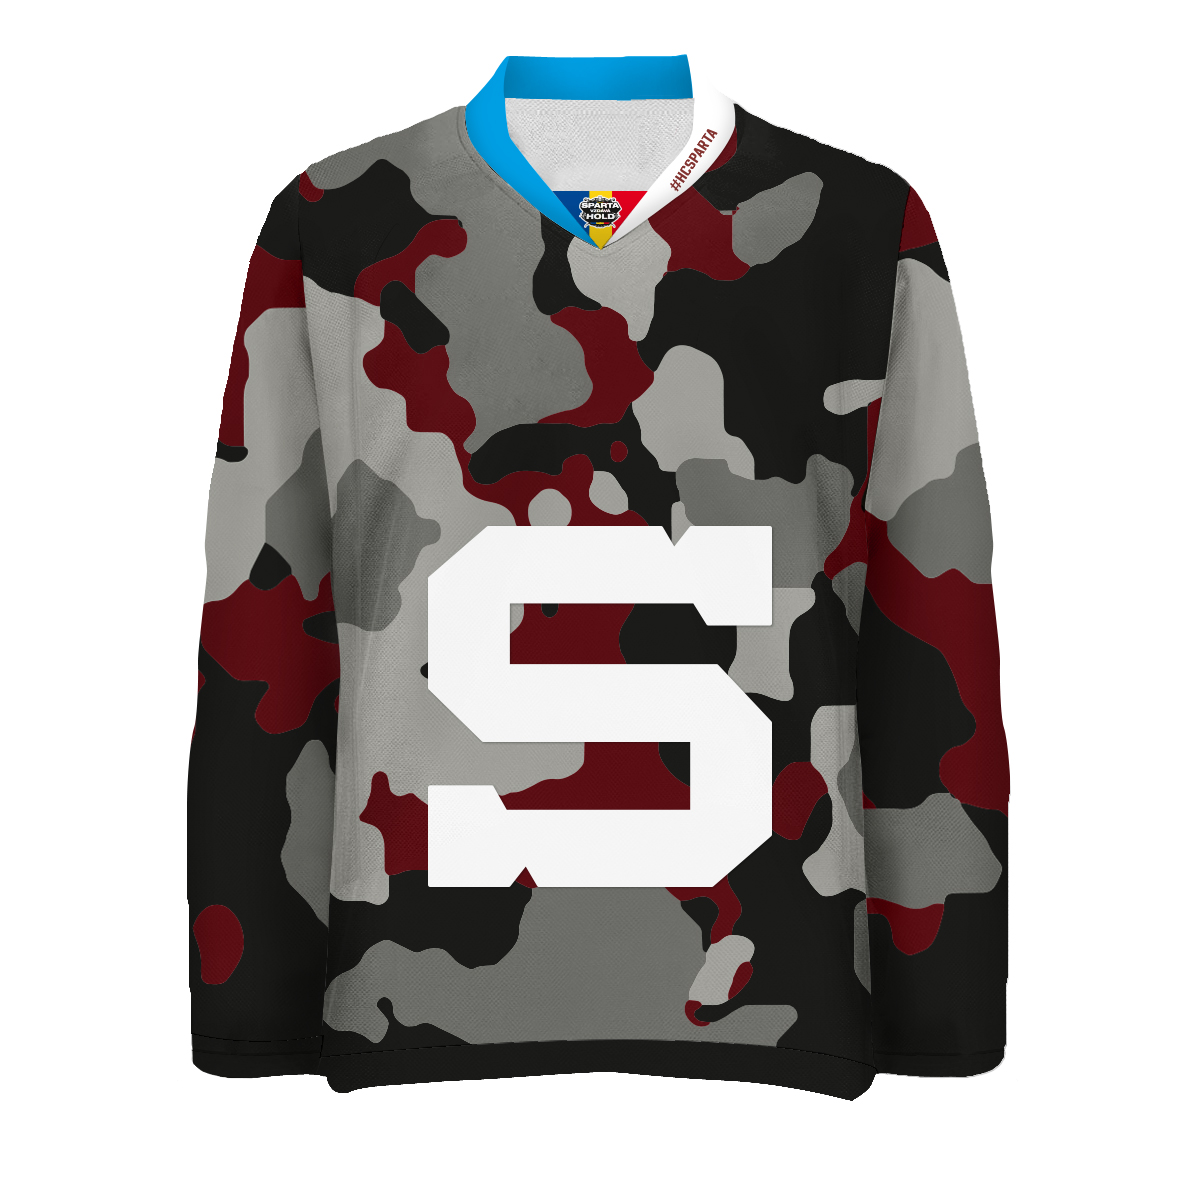 Fan jersey Sparta salutes to service without partner logos 17 18 a5967066d8c